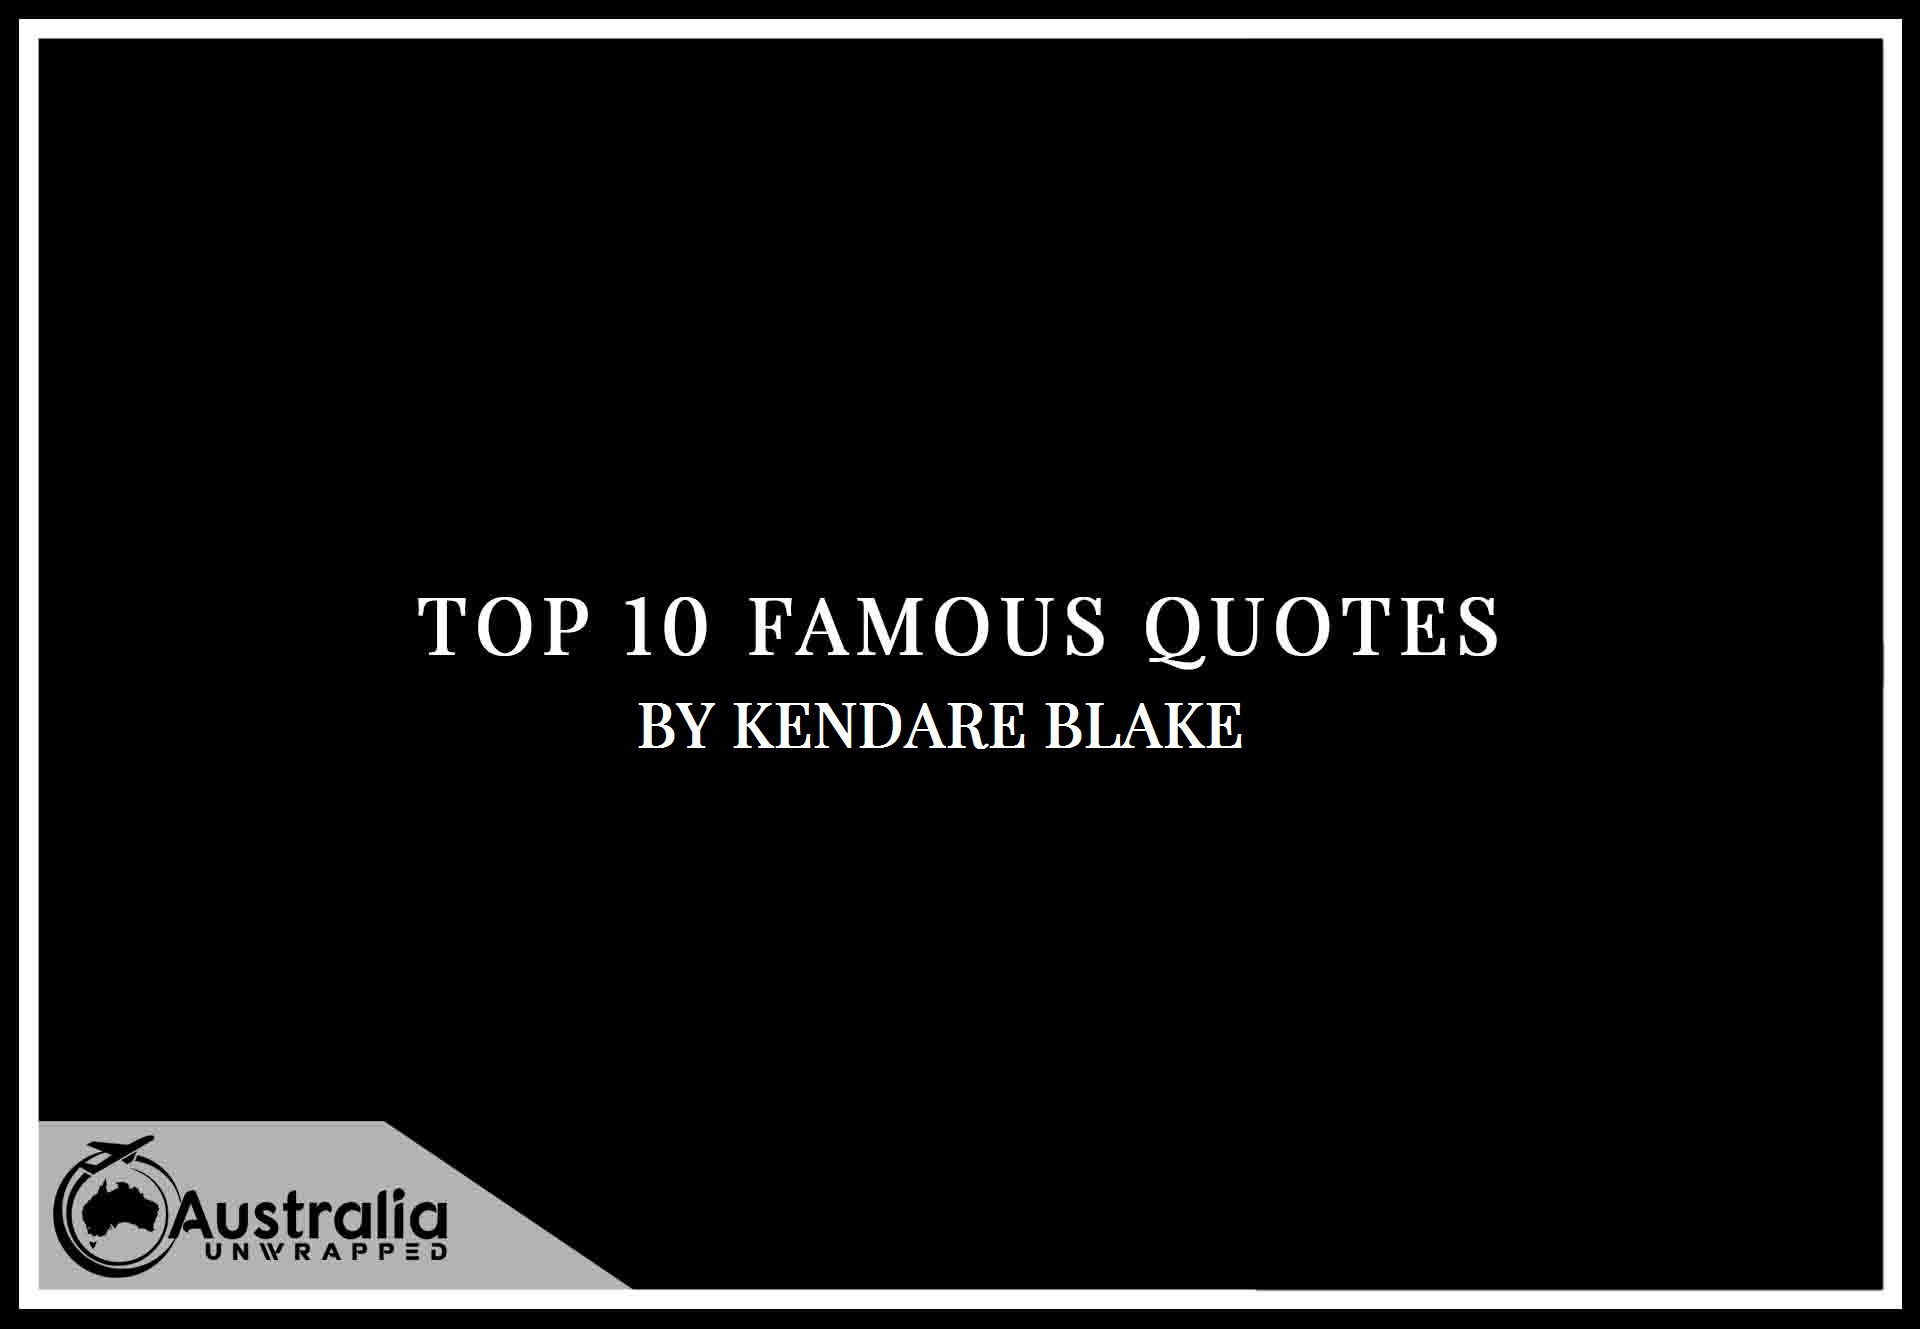 Kendare Blake's Top 10 Popular and Famous Quotes